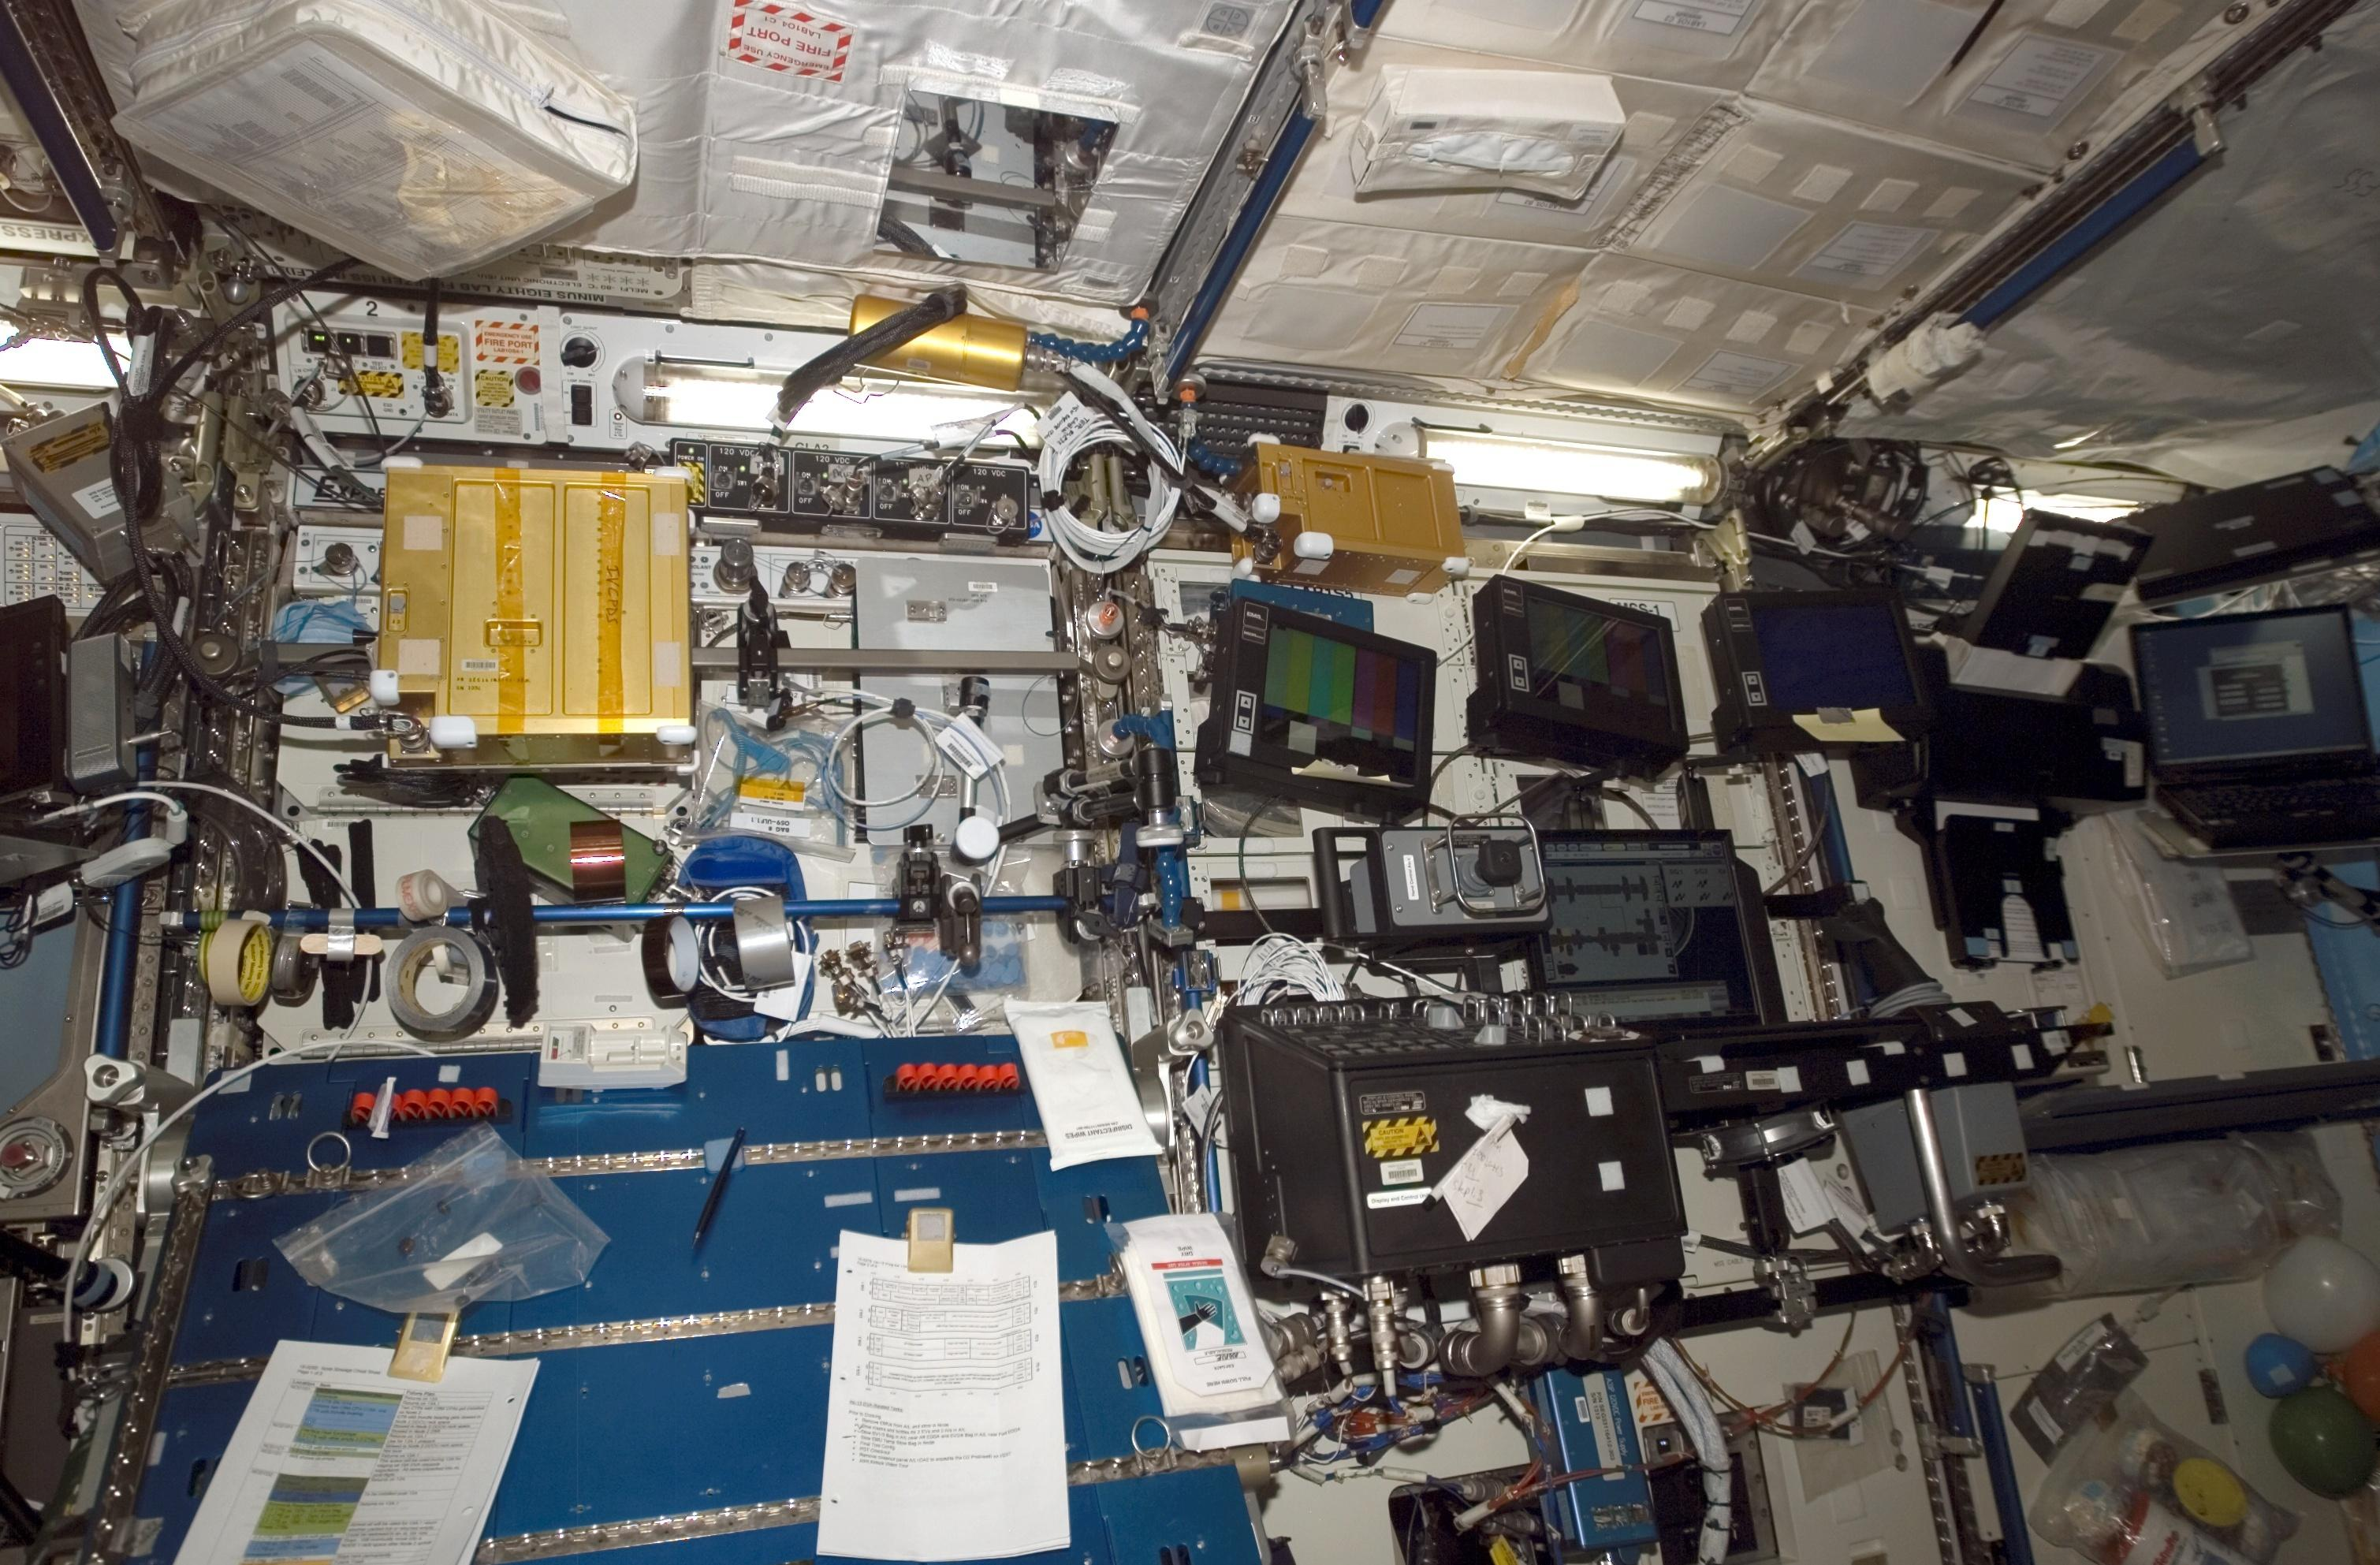 inside space station images - photo #9